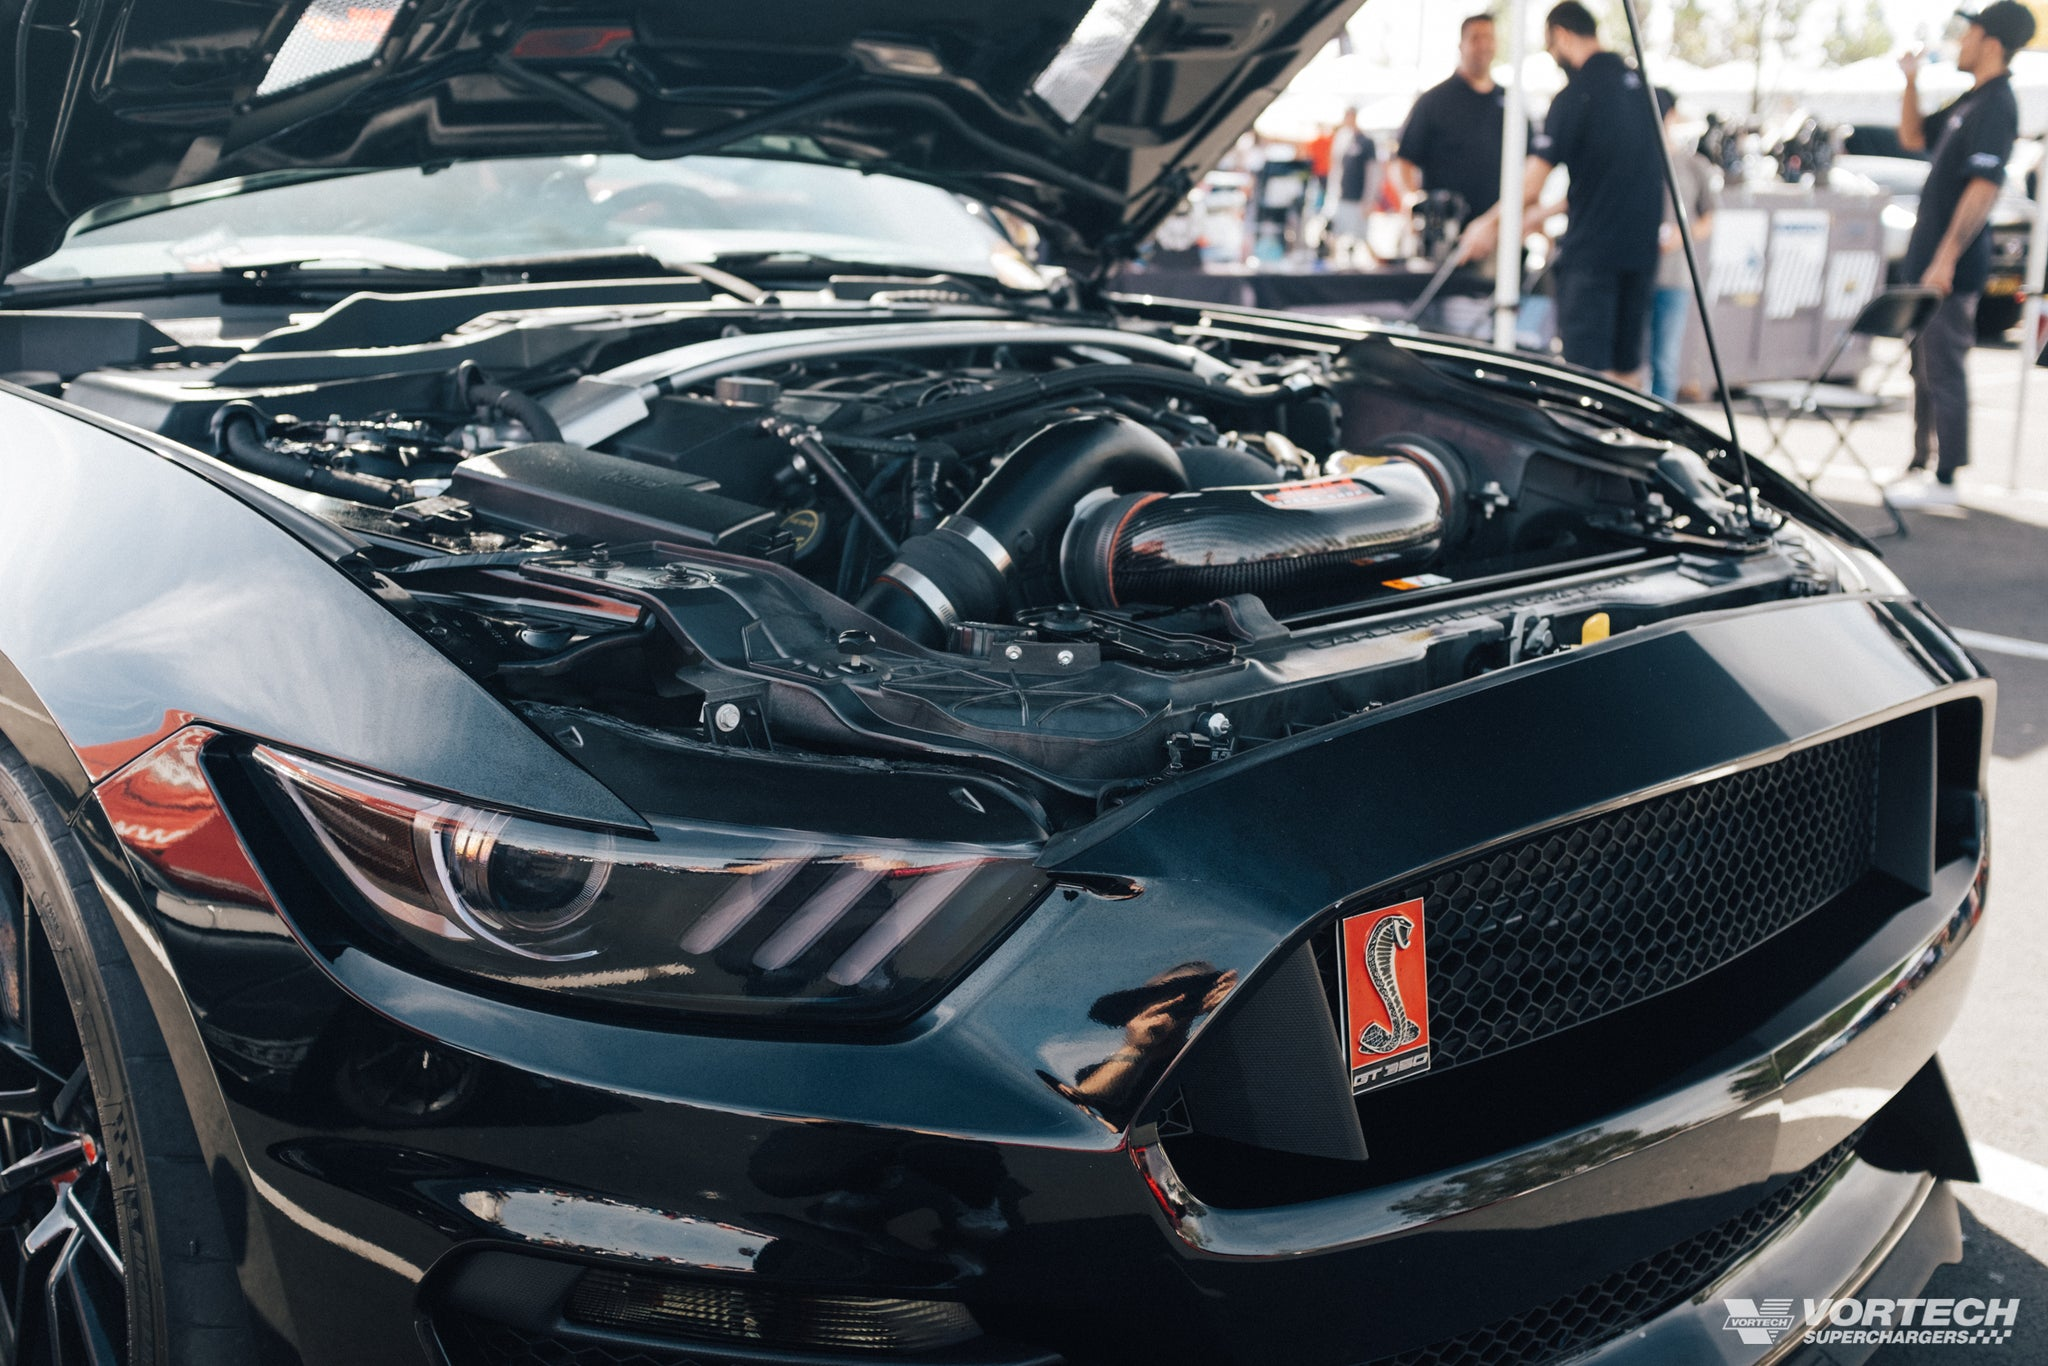 Vortech and Paxton Superchargers @ Fabulous Fords Forever 2018